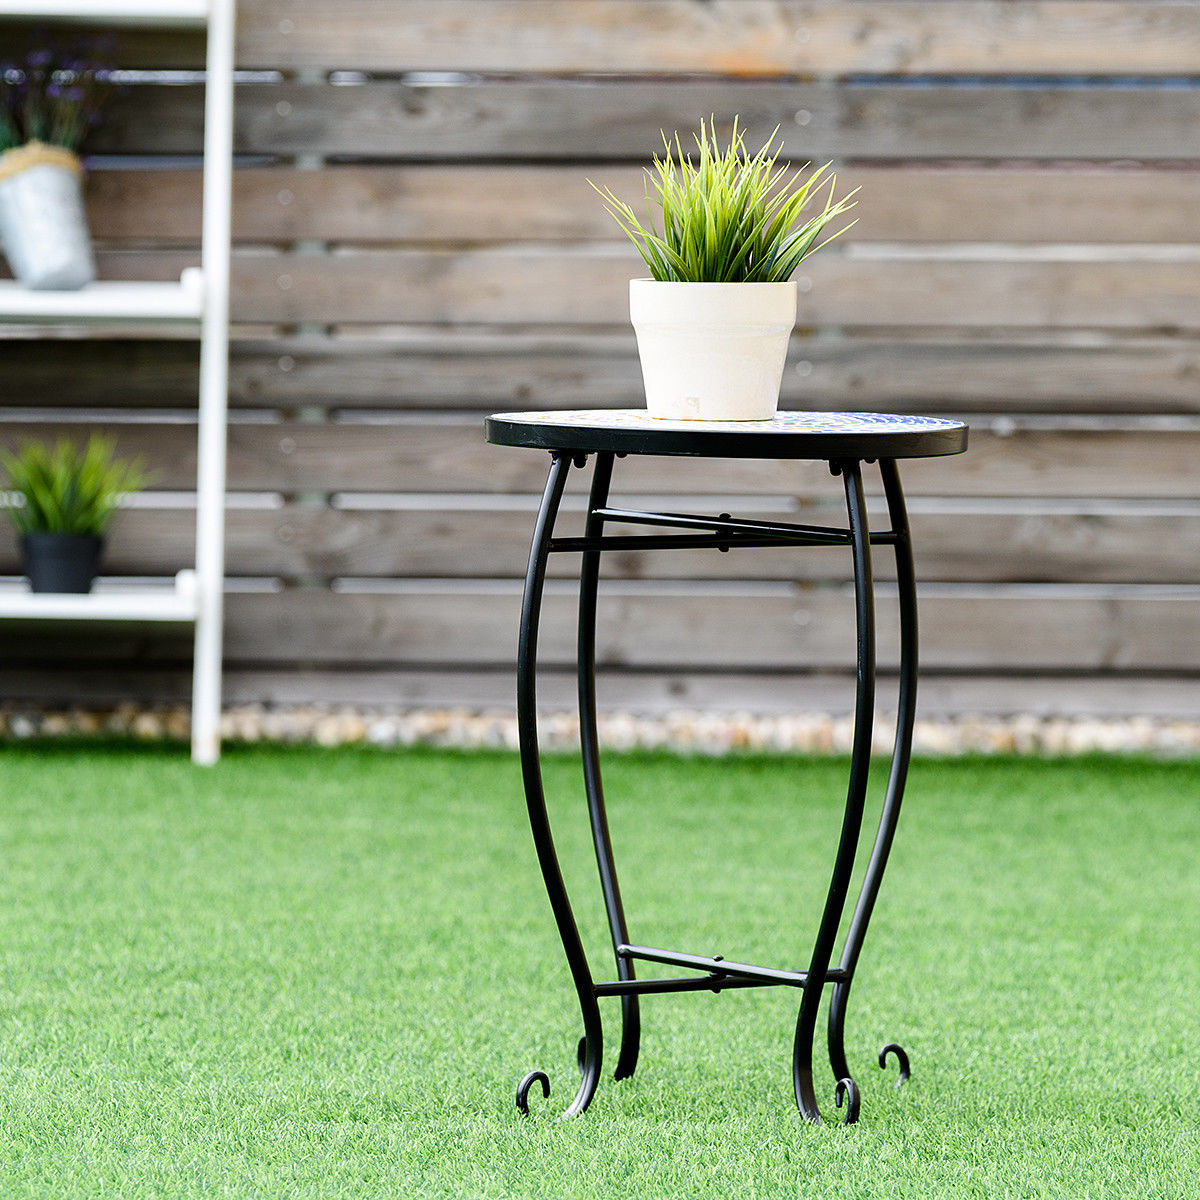 way outdoor indoor accent table plant stand scheme garden steel ocean black bedroom end tables red metal side comfortable drum throne corner chair coffee set gold decorative